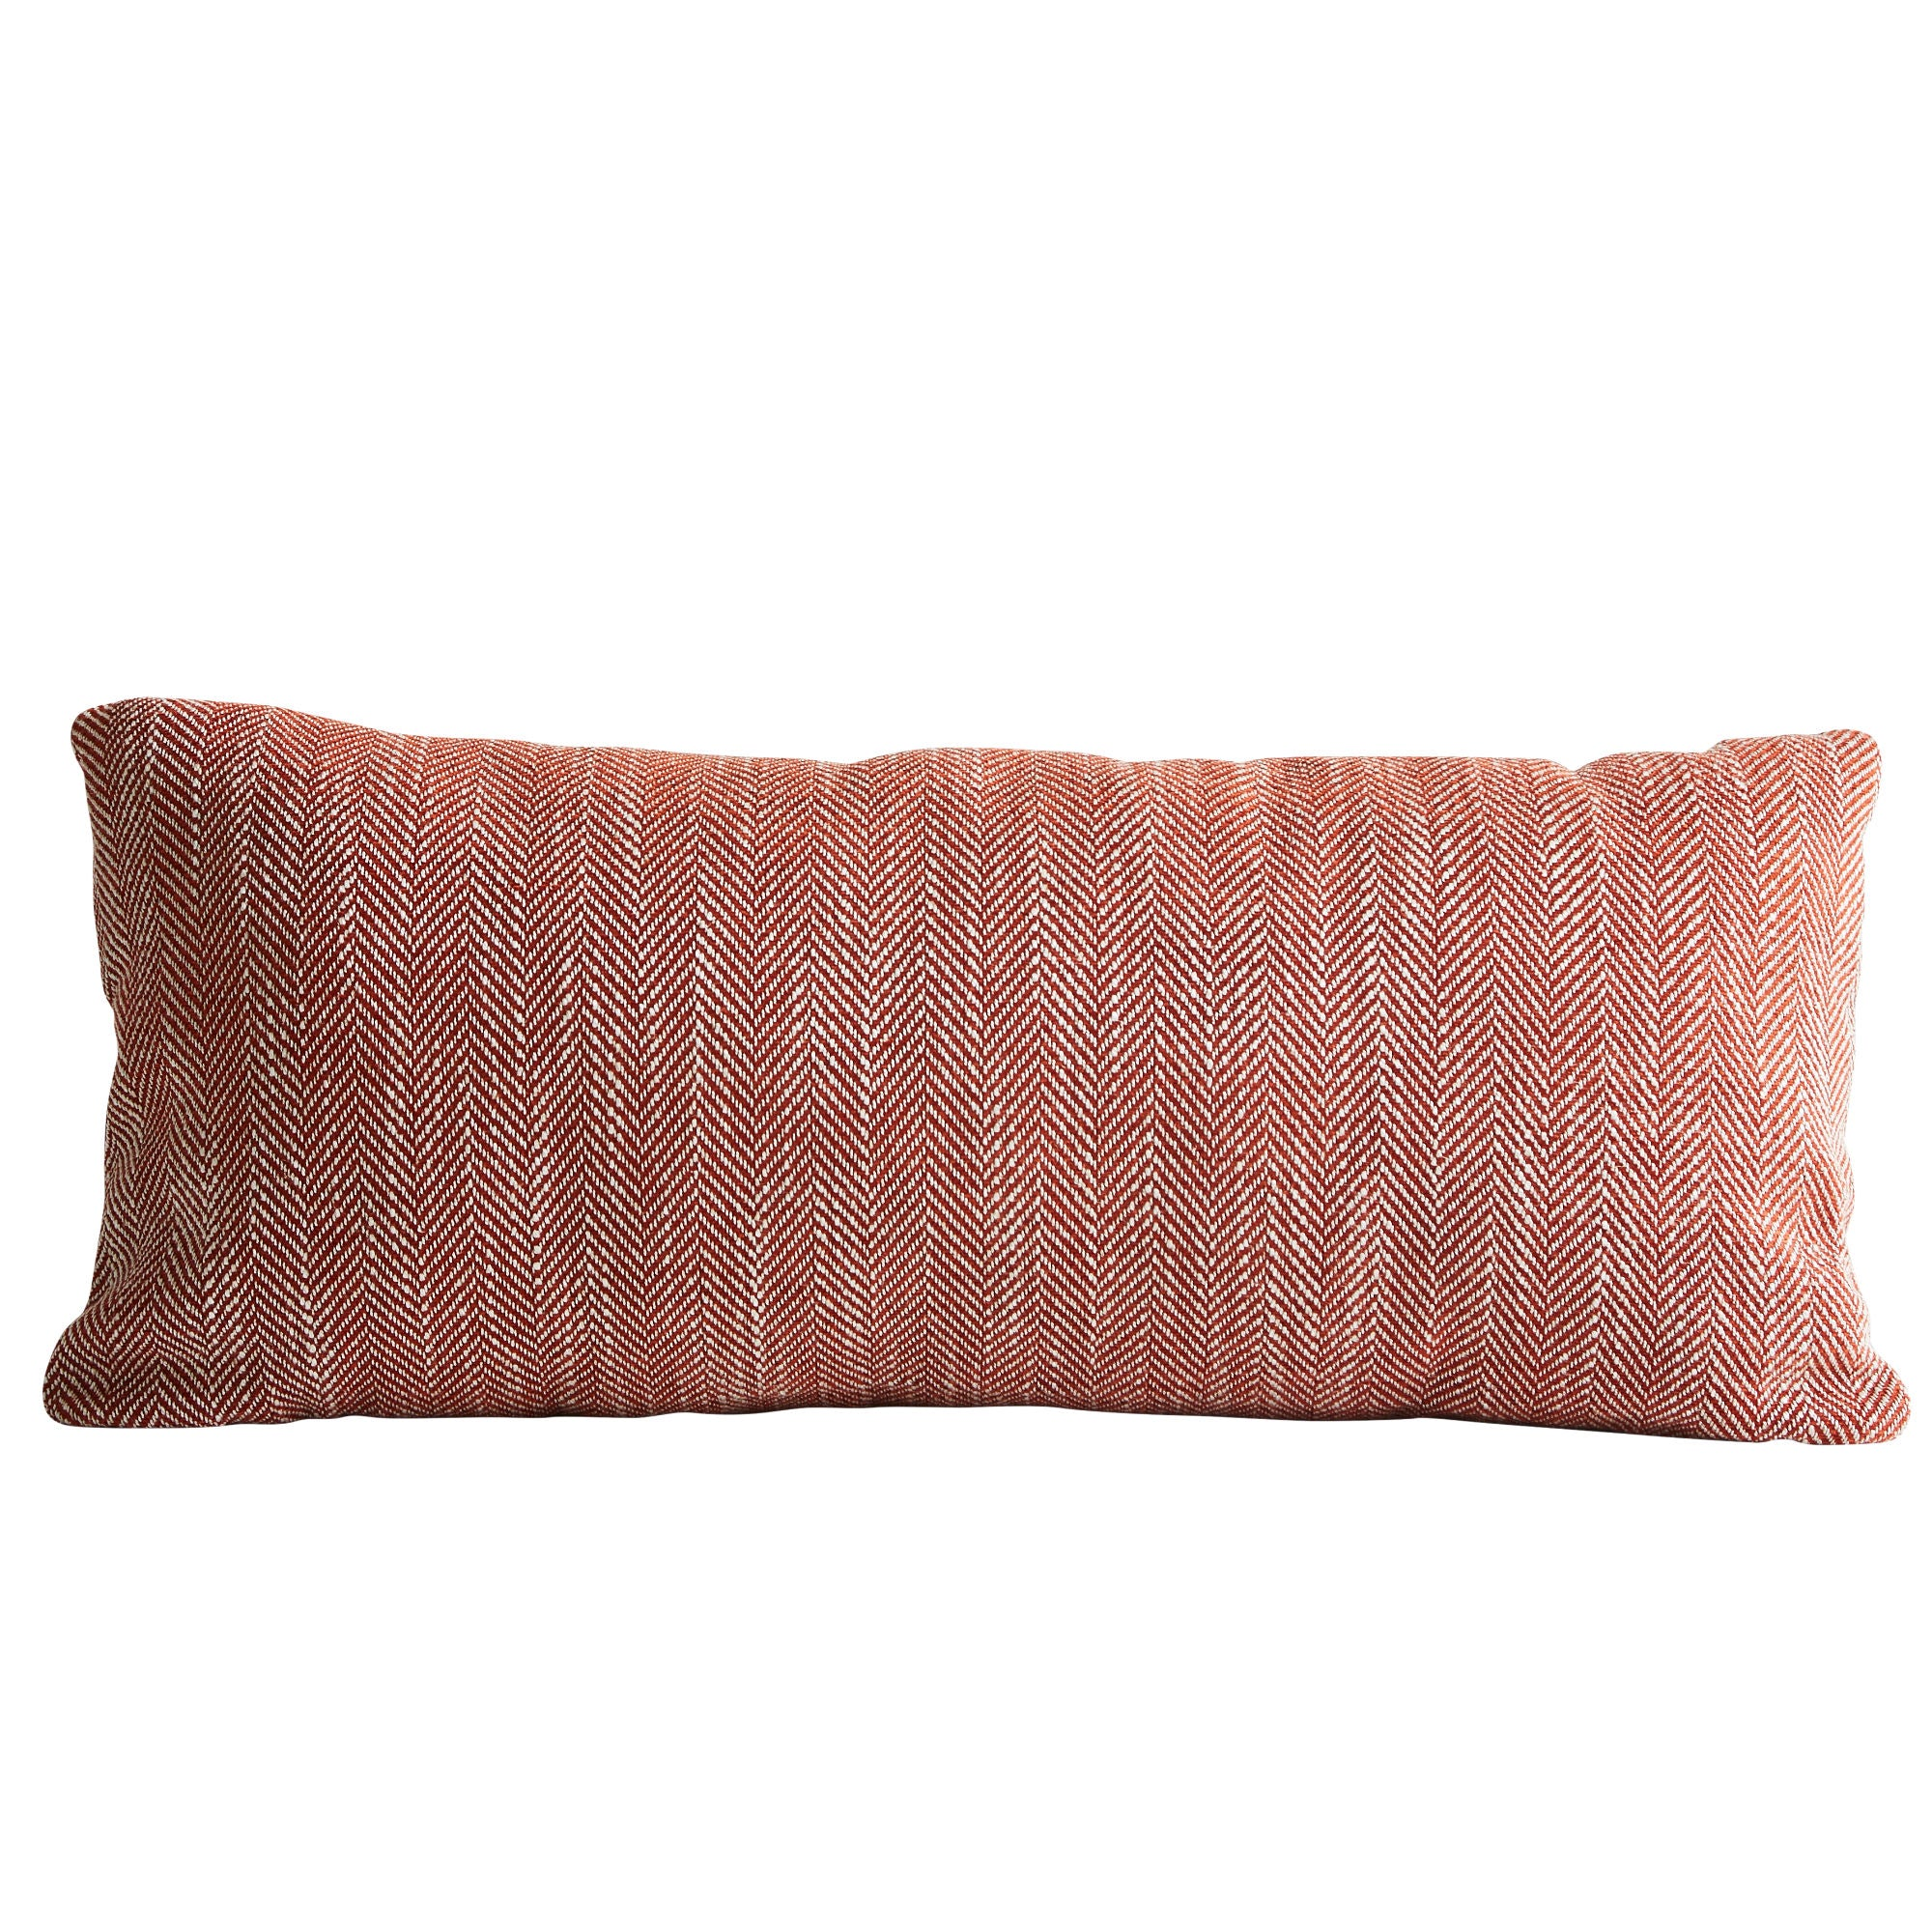 Woud Herrinbone Cushion , Carmine Red